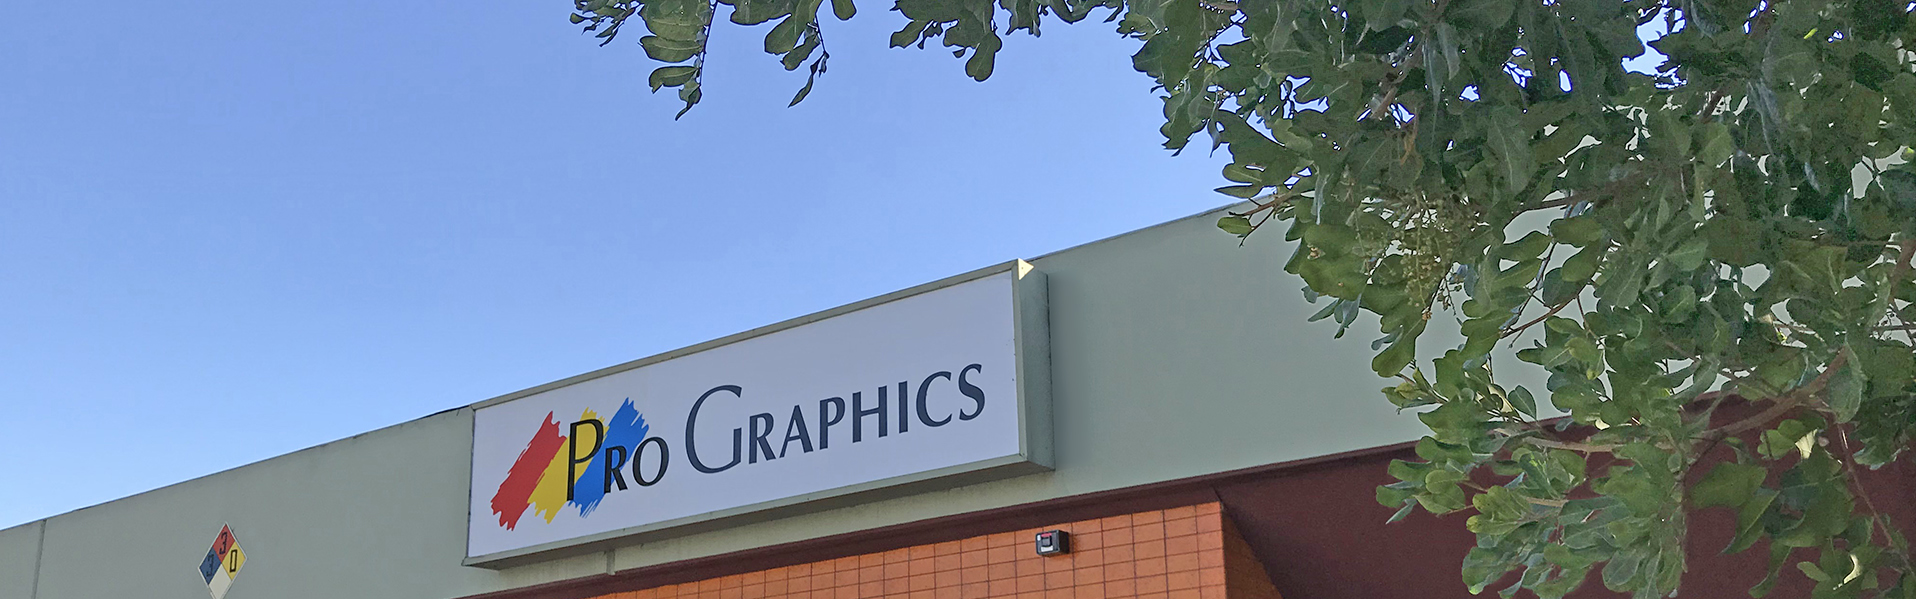 ProGraphics building sign